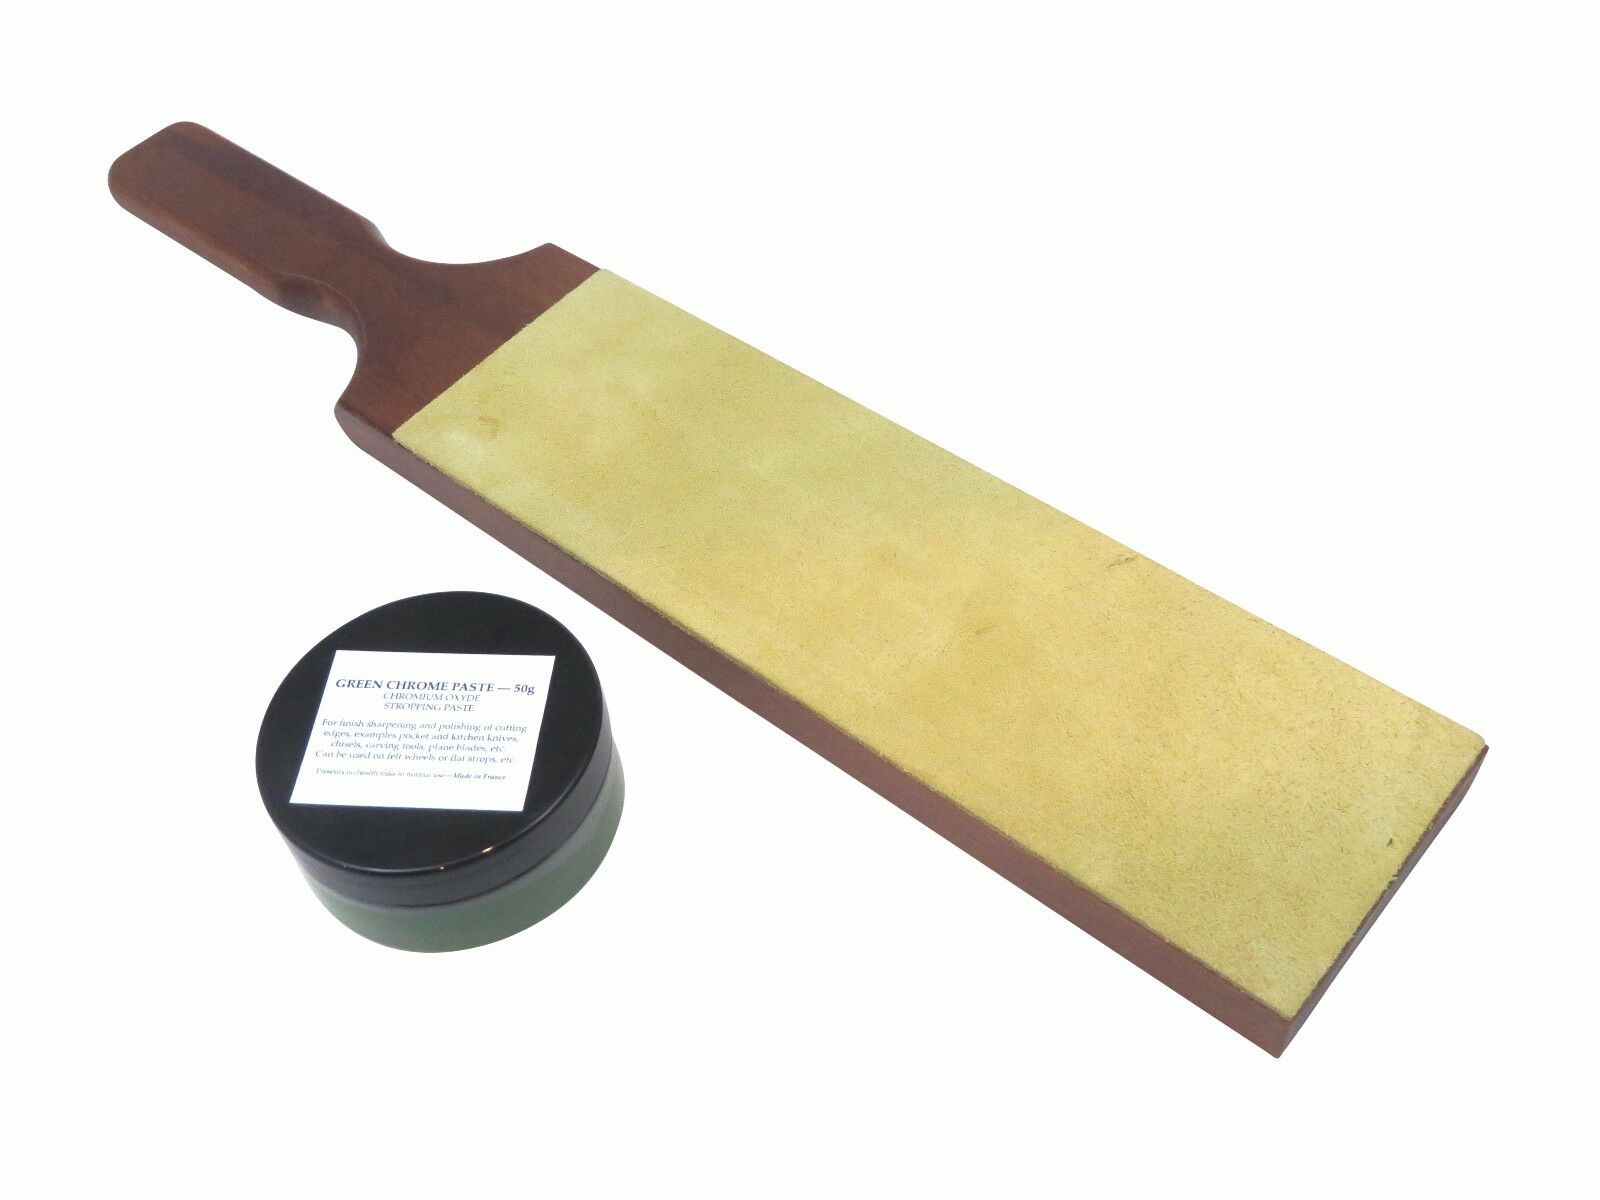 French Leder Strop with 50 G Jar French Grün Chromium Oxide Extra-Fine Paste